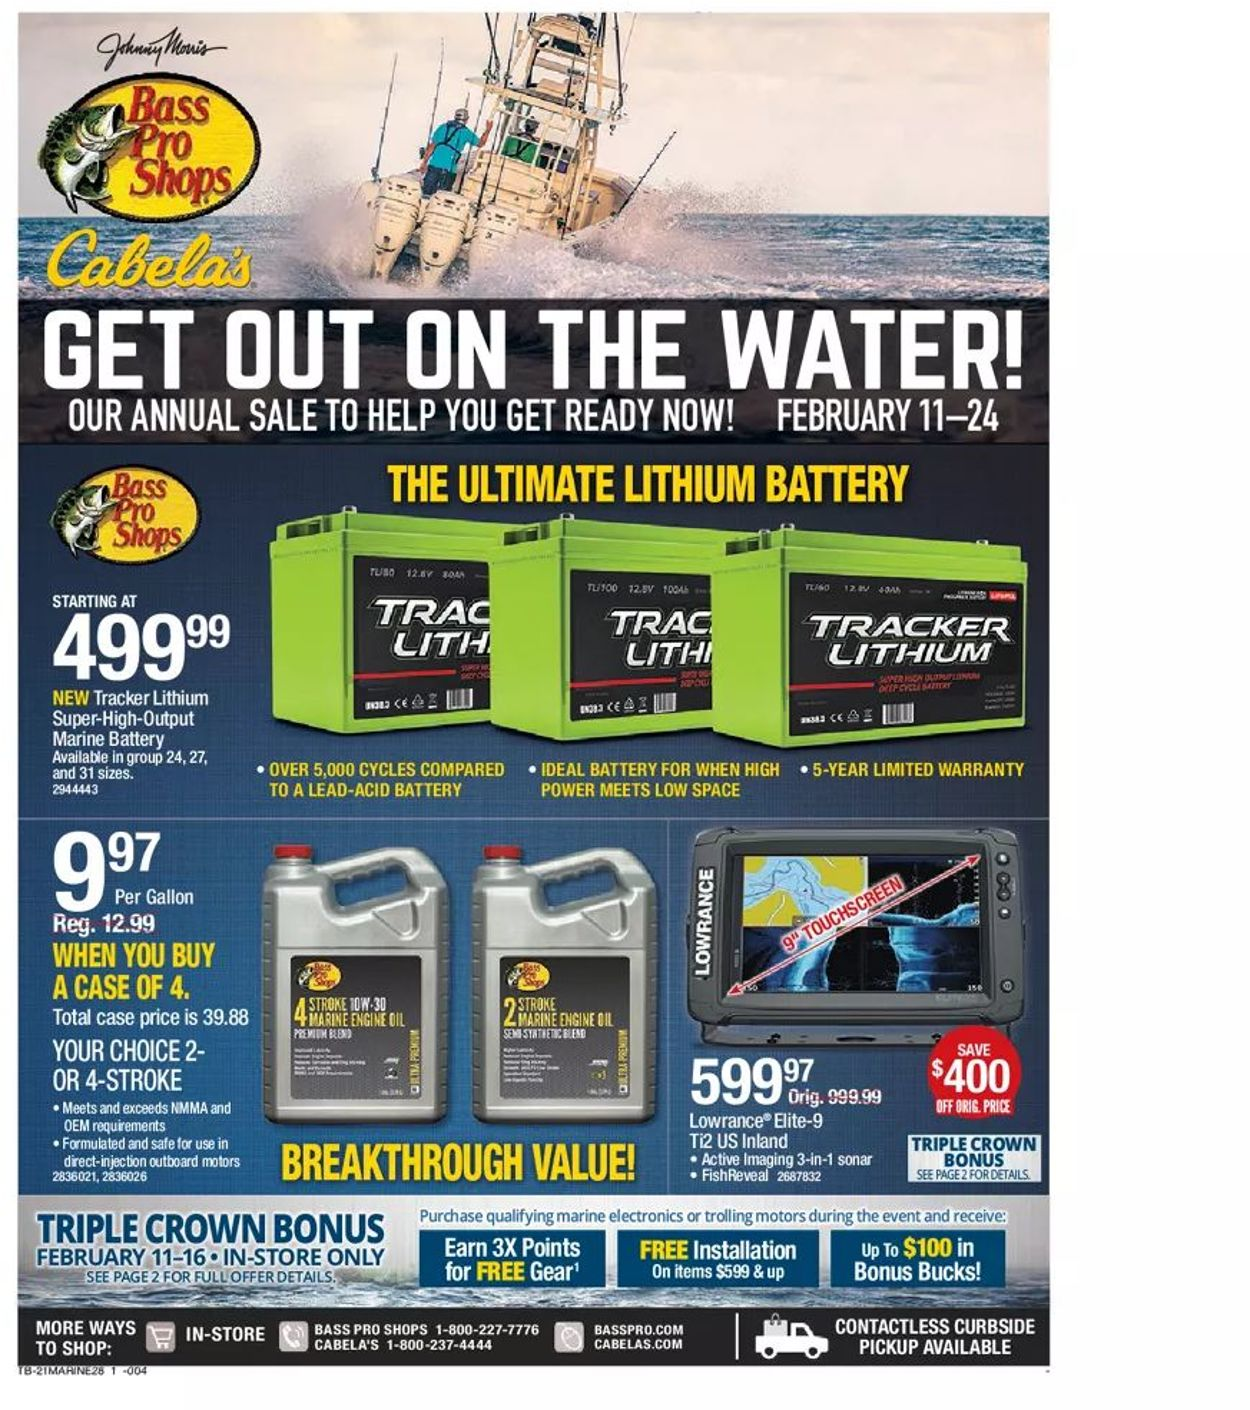 Bass Pro Get Out on the Water 2021 Weekly Ad Circular - valid 02/11-02/24/2021